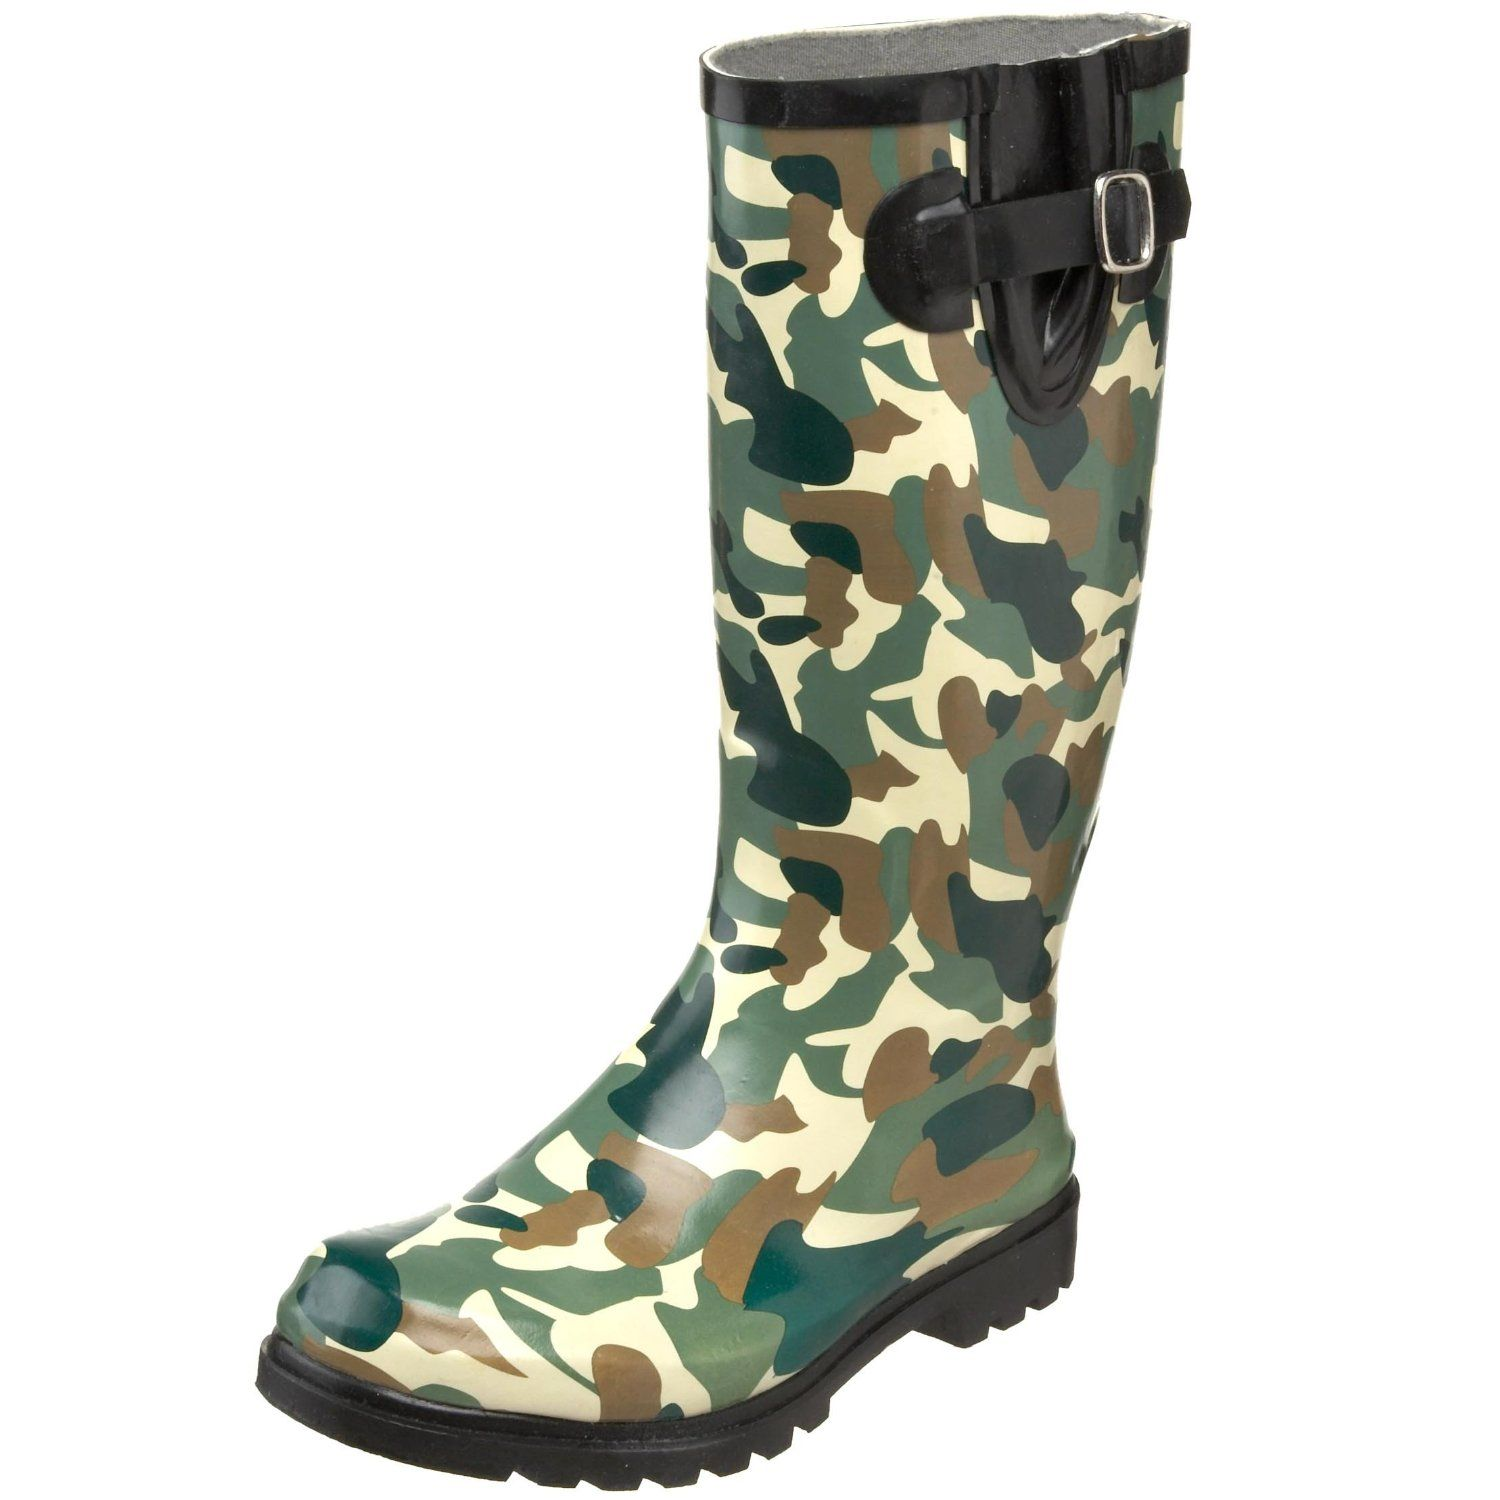 Cool Pink Camo Bows For Women   Girl Rain Boots Realtree Ap Pink Camo